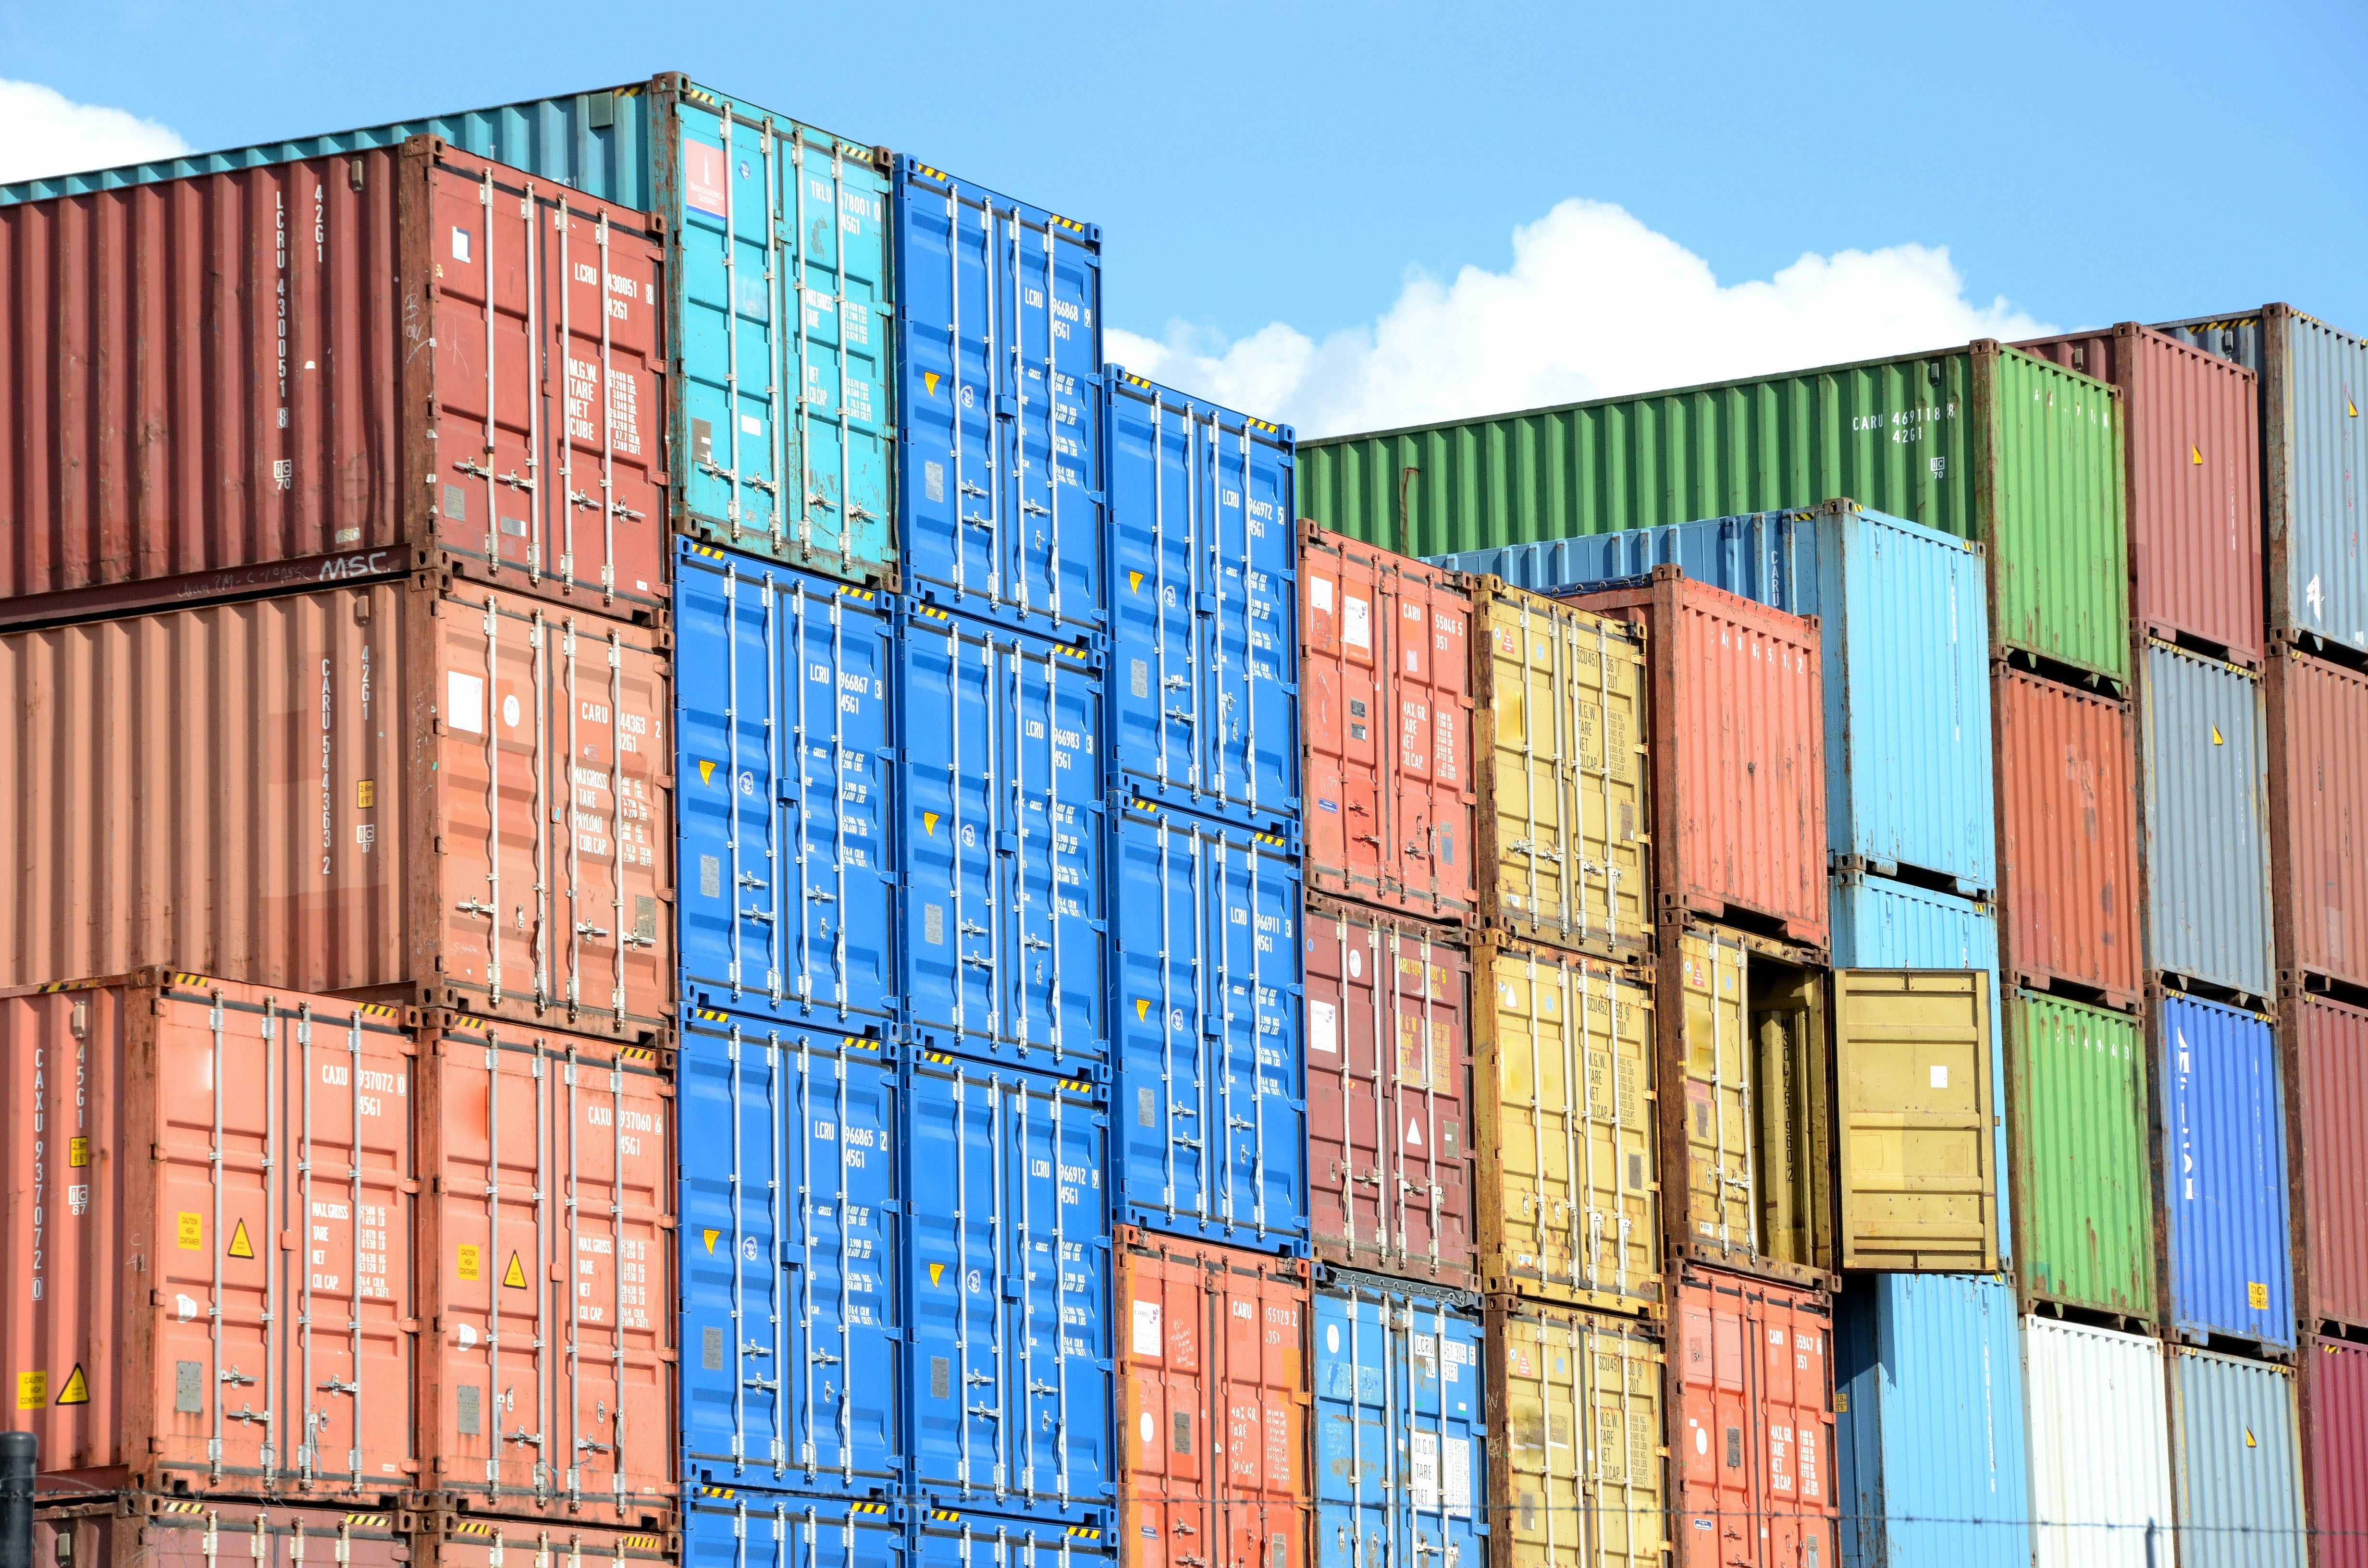 Docker and containerization